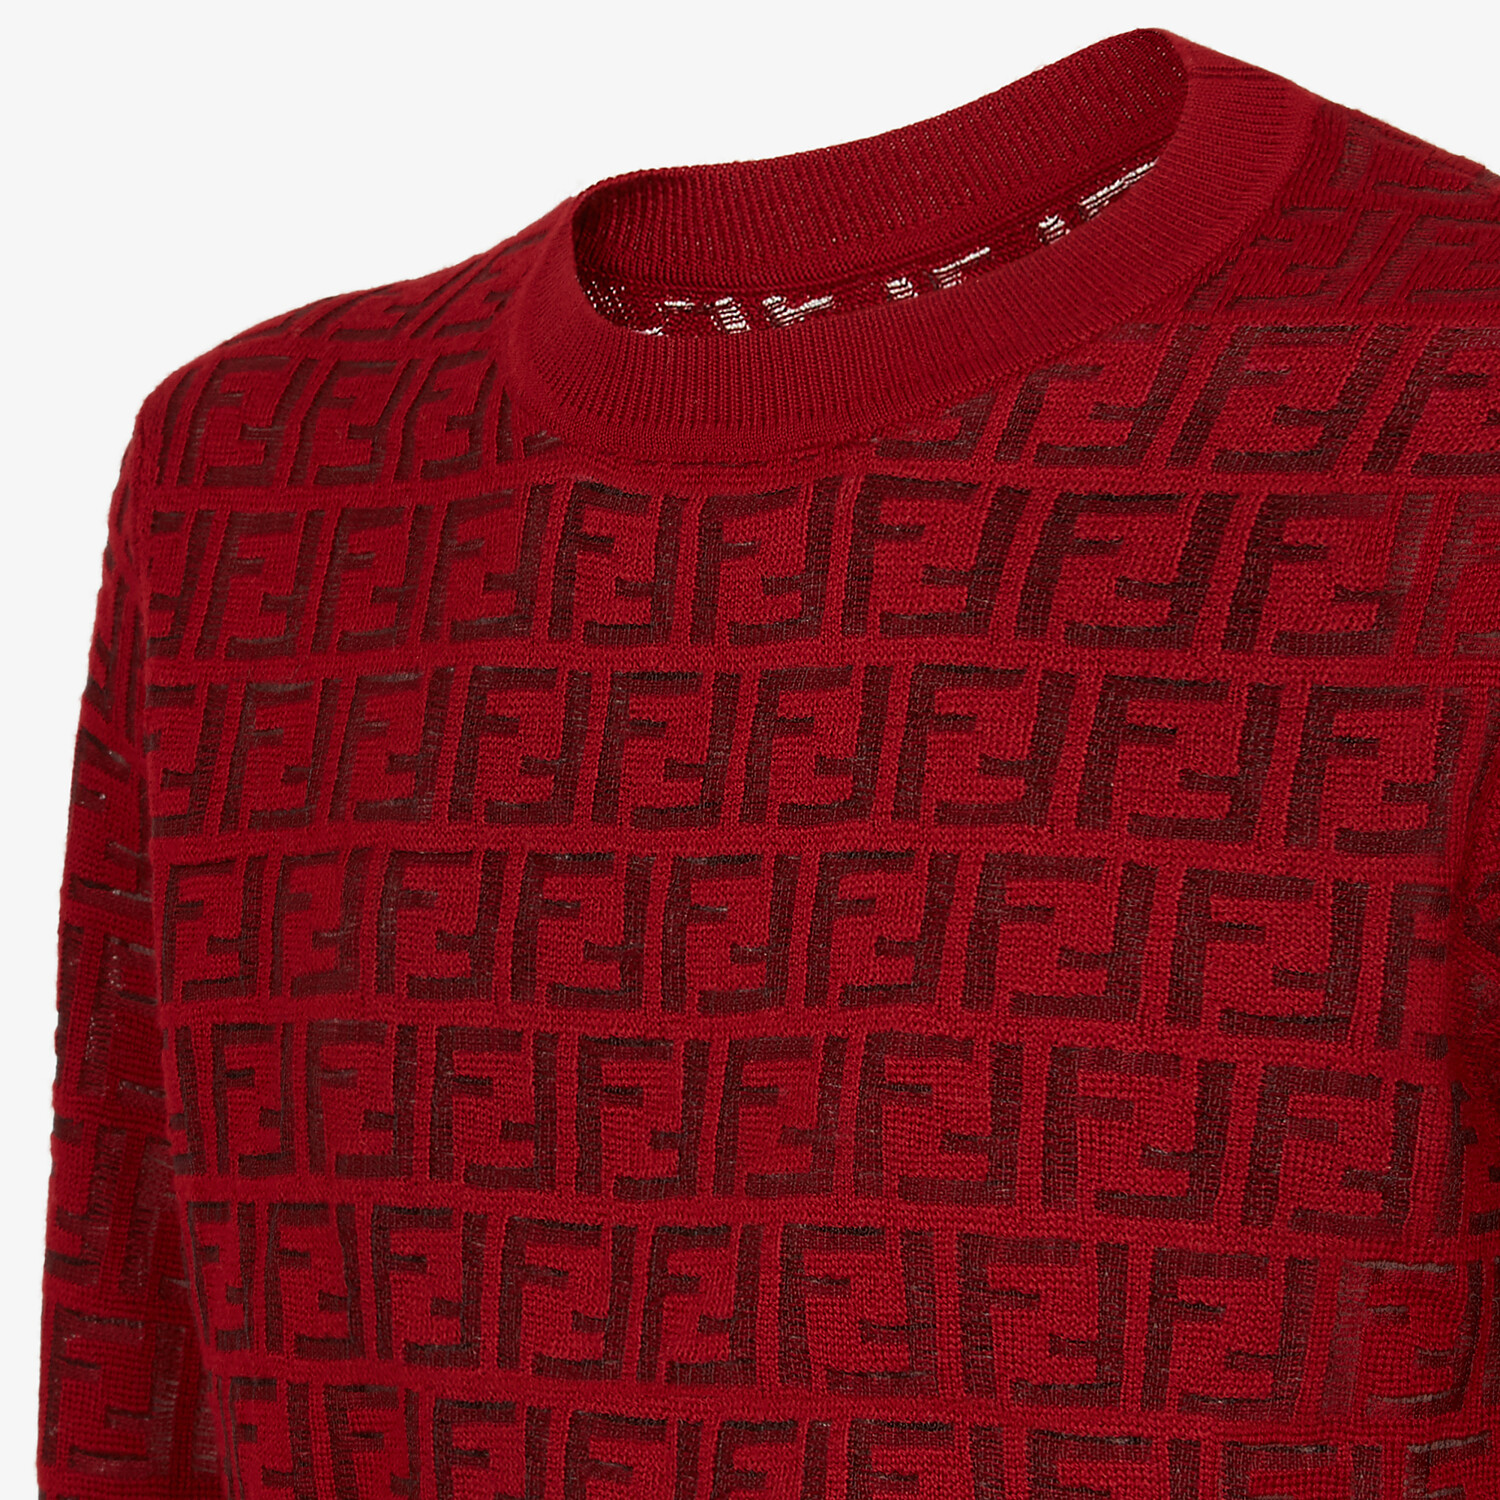 FENDI SWEATER - Sweater from the Lunar New Year Limited Capsule Collection - view 3 detail